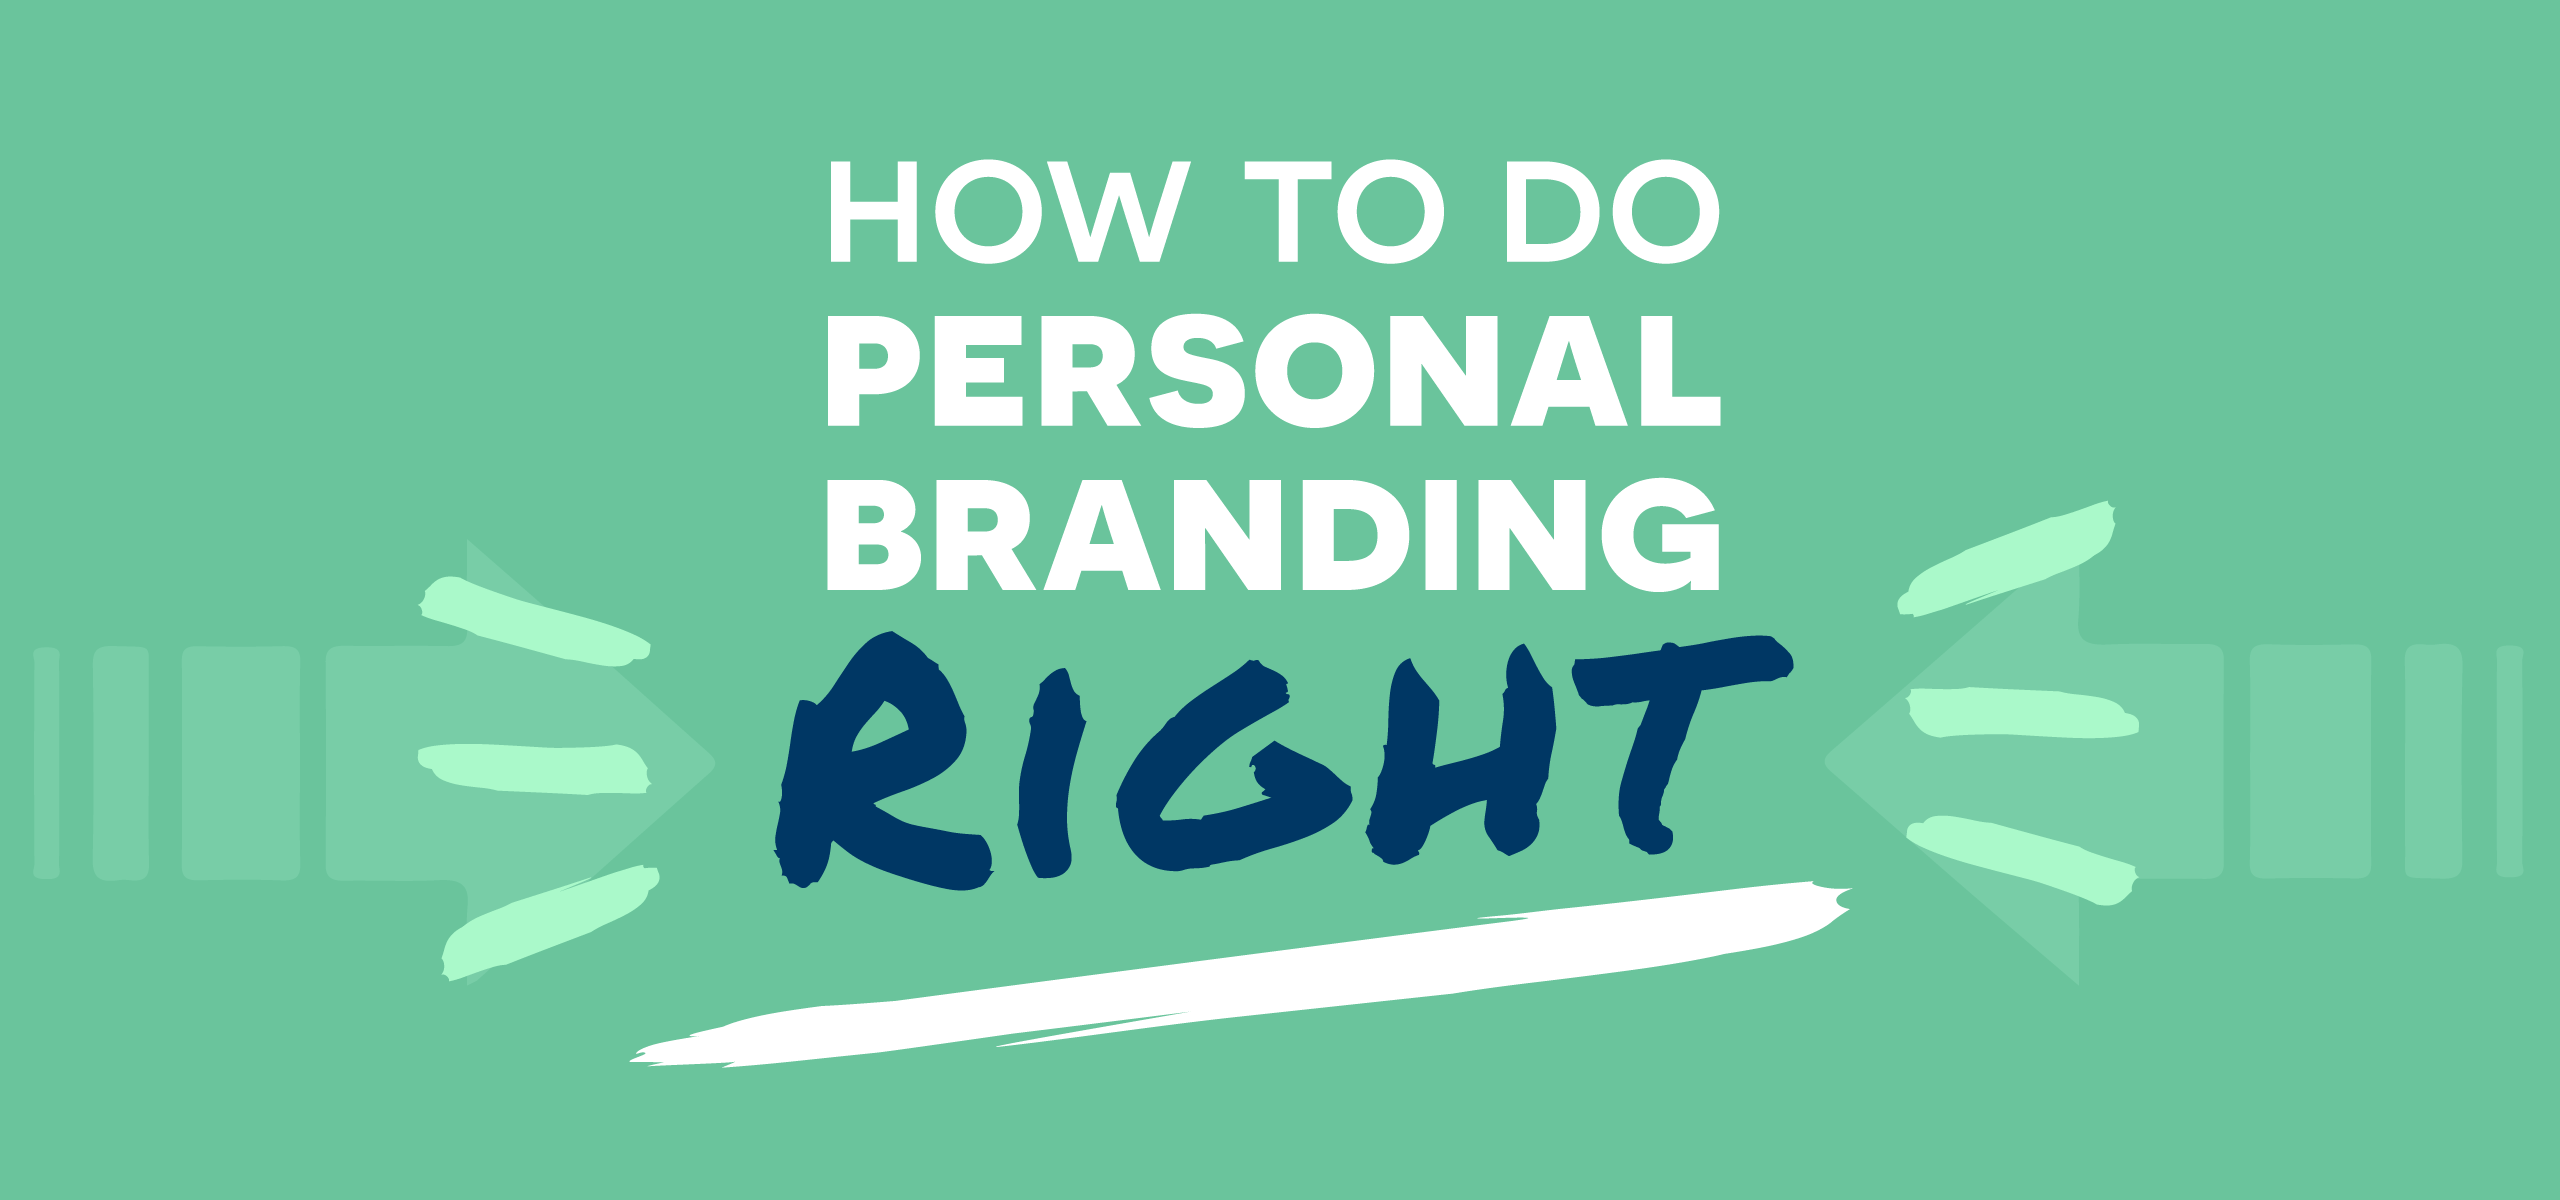 Personal Branding for Healthcare HR